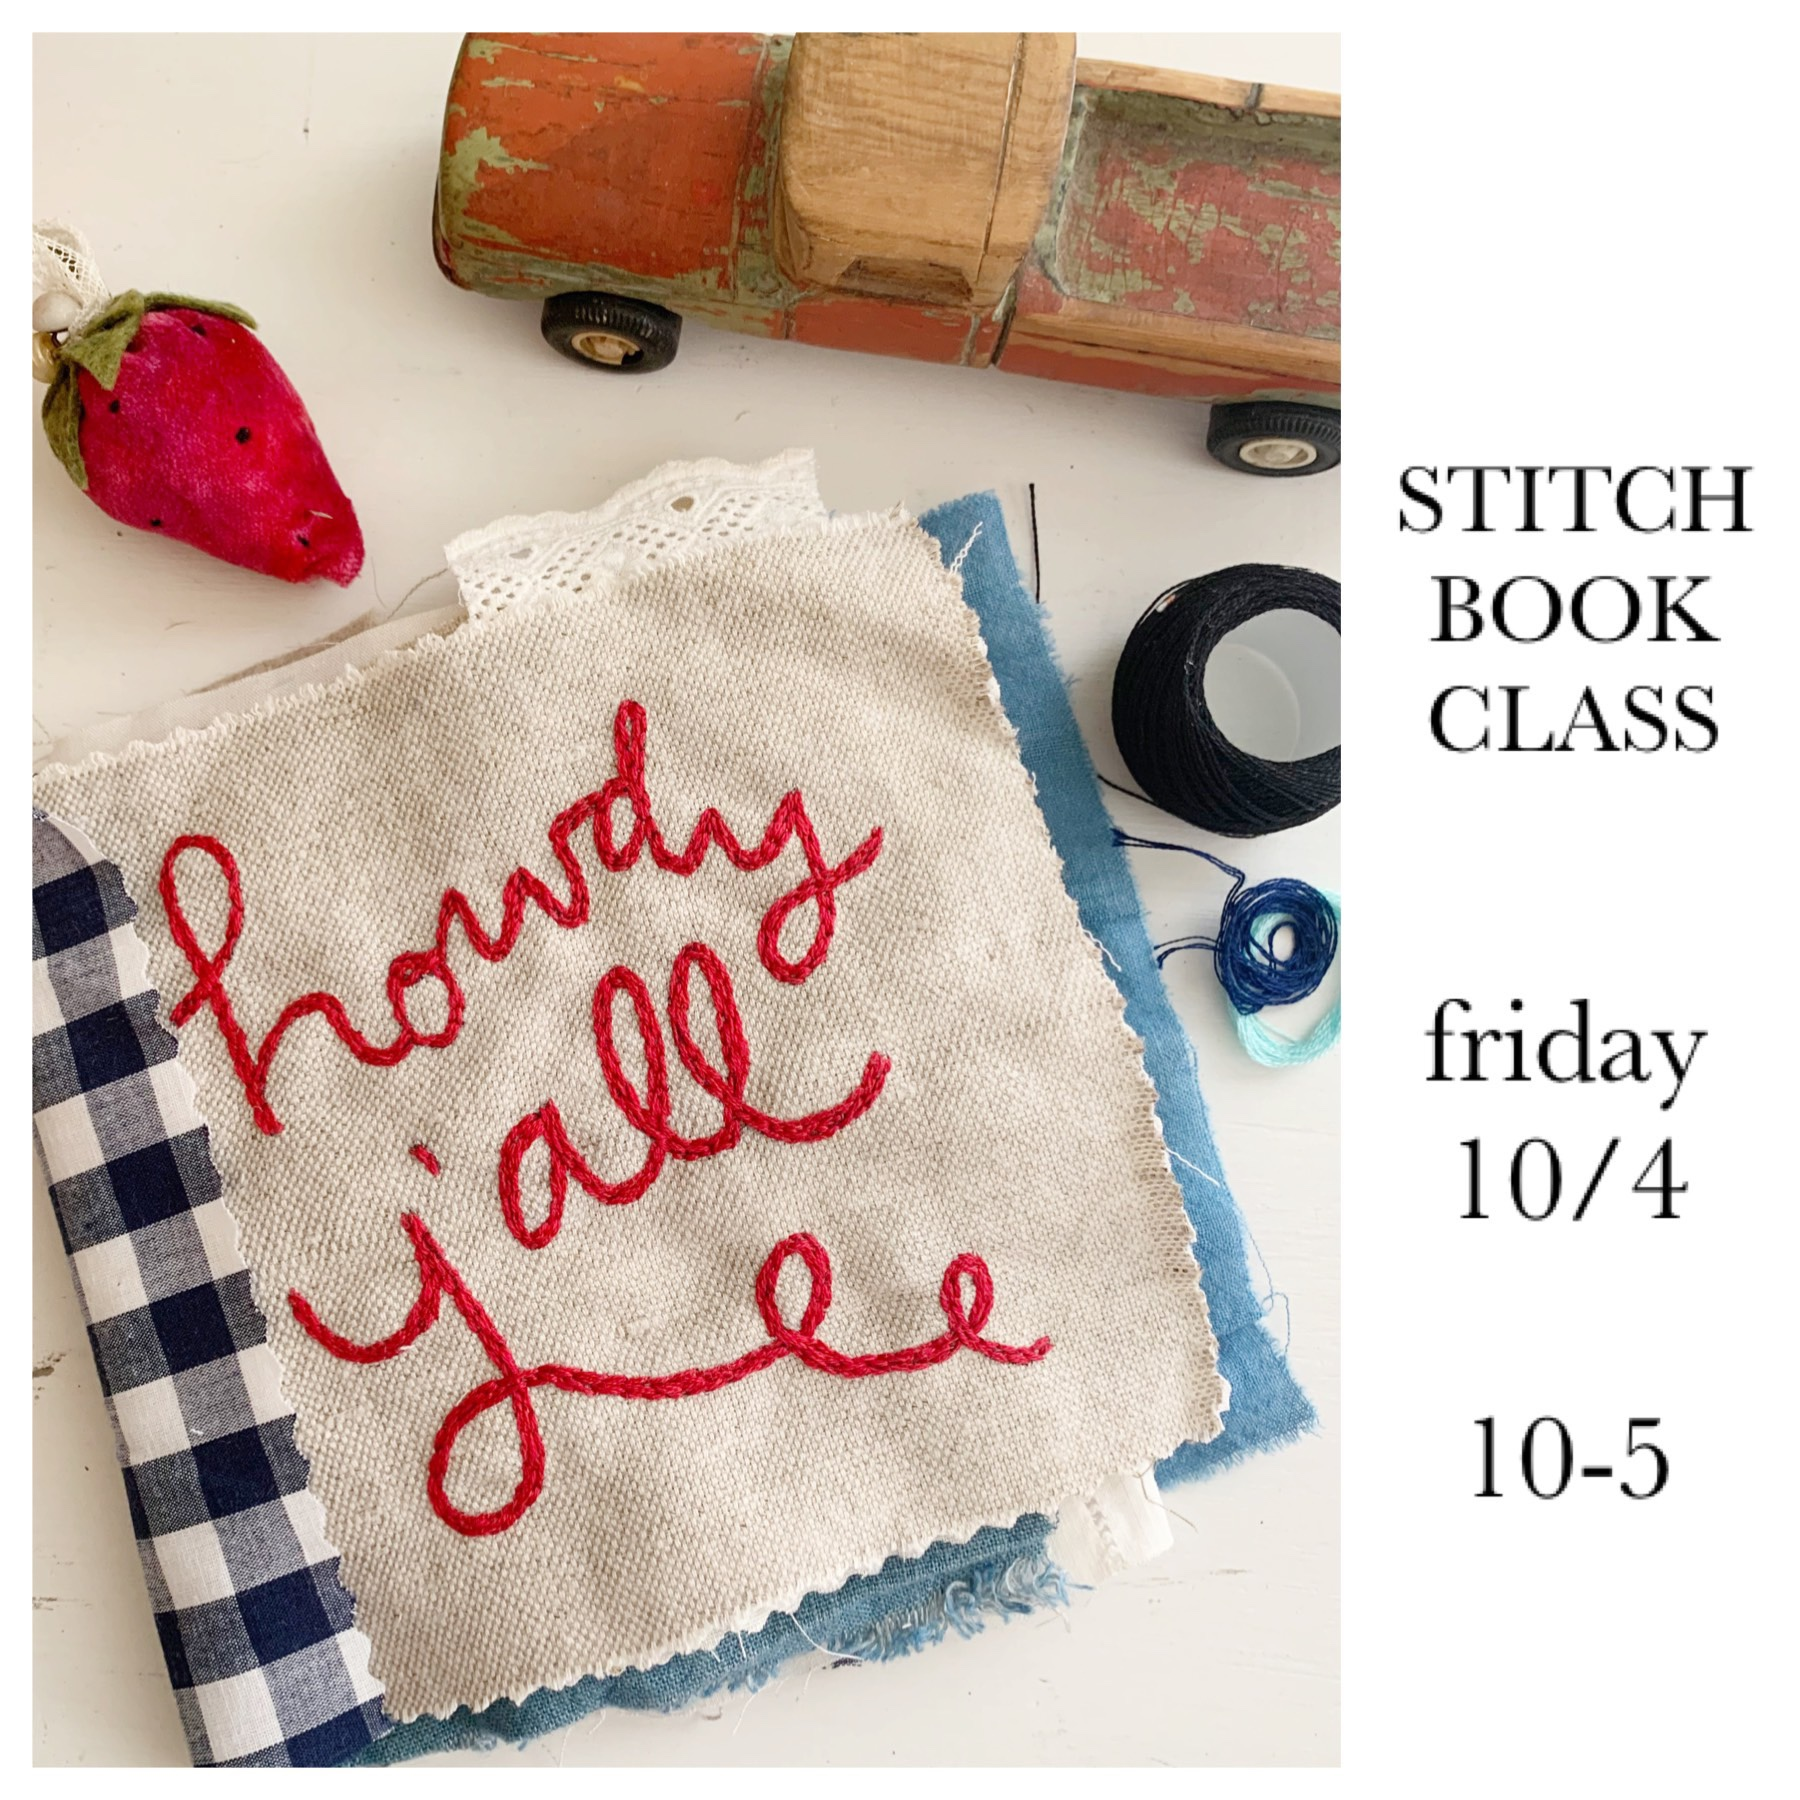 stitch book class$125.00 - all materials included but please bring your own embroidery scissorslearn how to create a darling stitch book celebrating the style of Texas! full of slow stitching patterns, vintage trims and special embellishments....this will bea unique and beautiful place to keep and admire your handiwork.this workshop will cover the introduction and construction of your stitch book, stitching techniques and experimenting with different textiles.